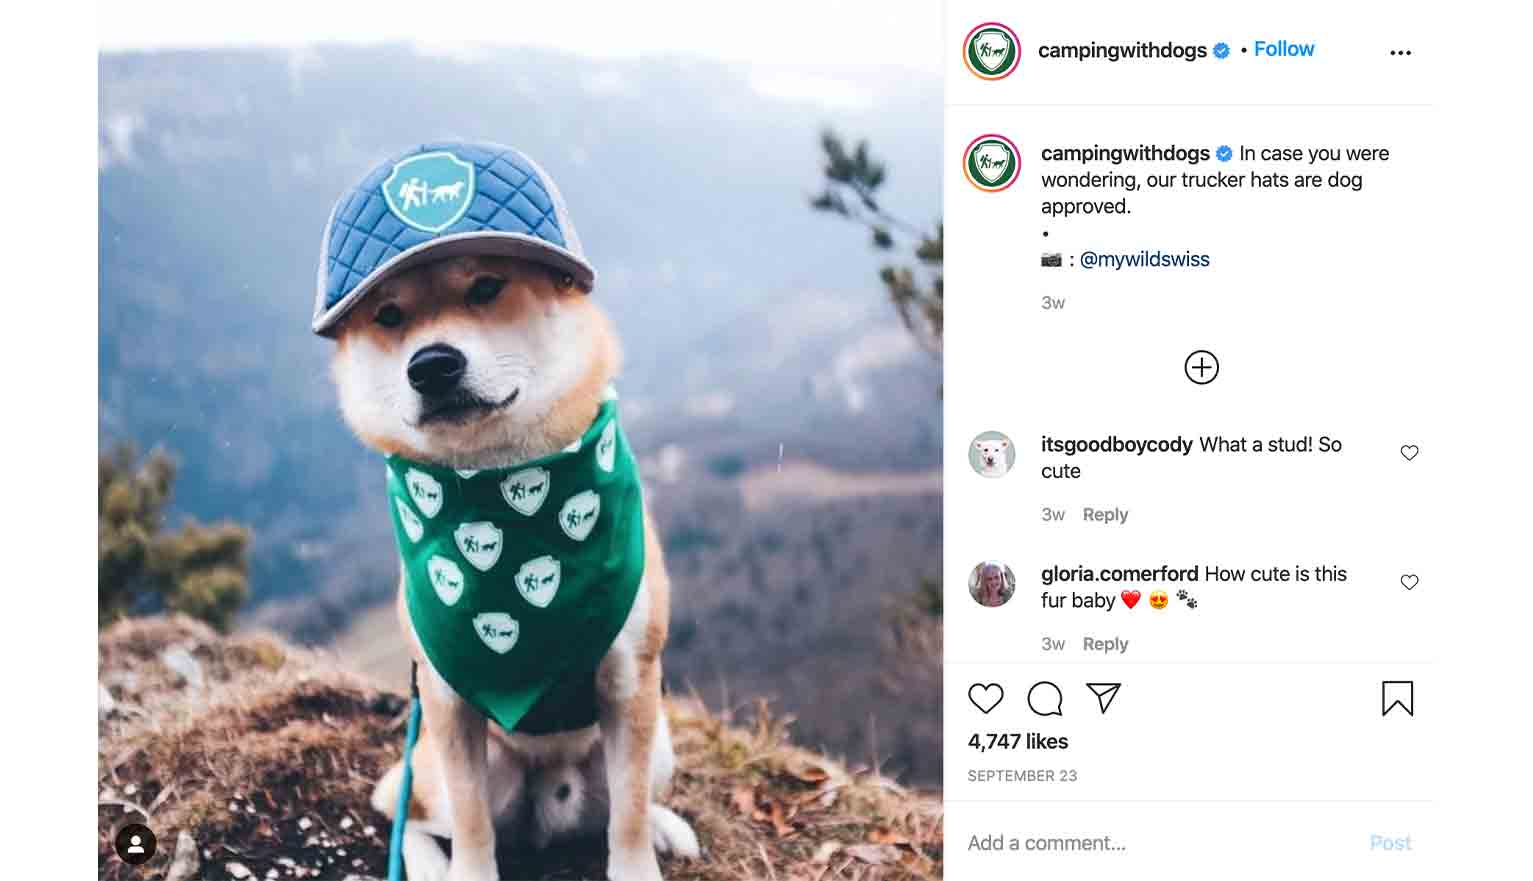 Camping With Dogs, an outdoors-focused retailer, gets followers to add the #campingwithdogs hashtag alongside the pictures of their beloved canines.